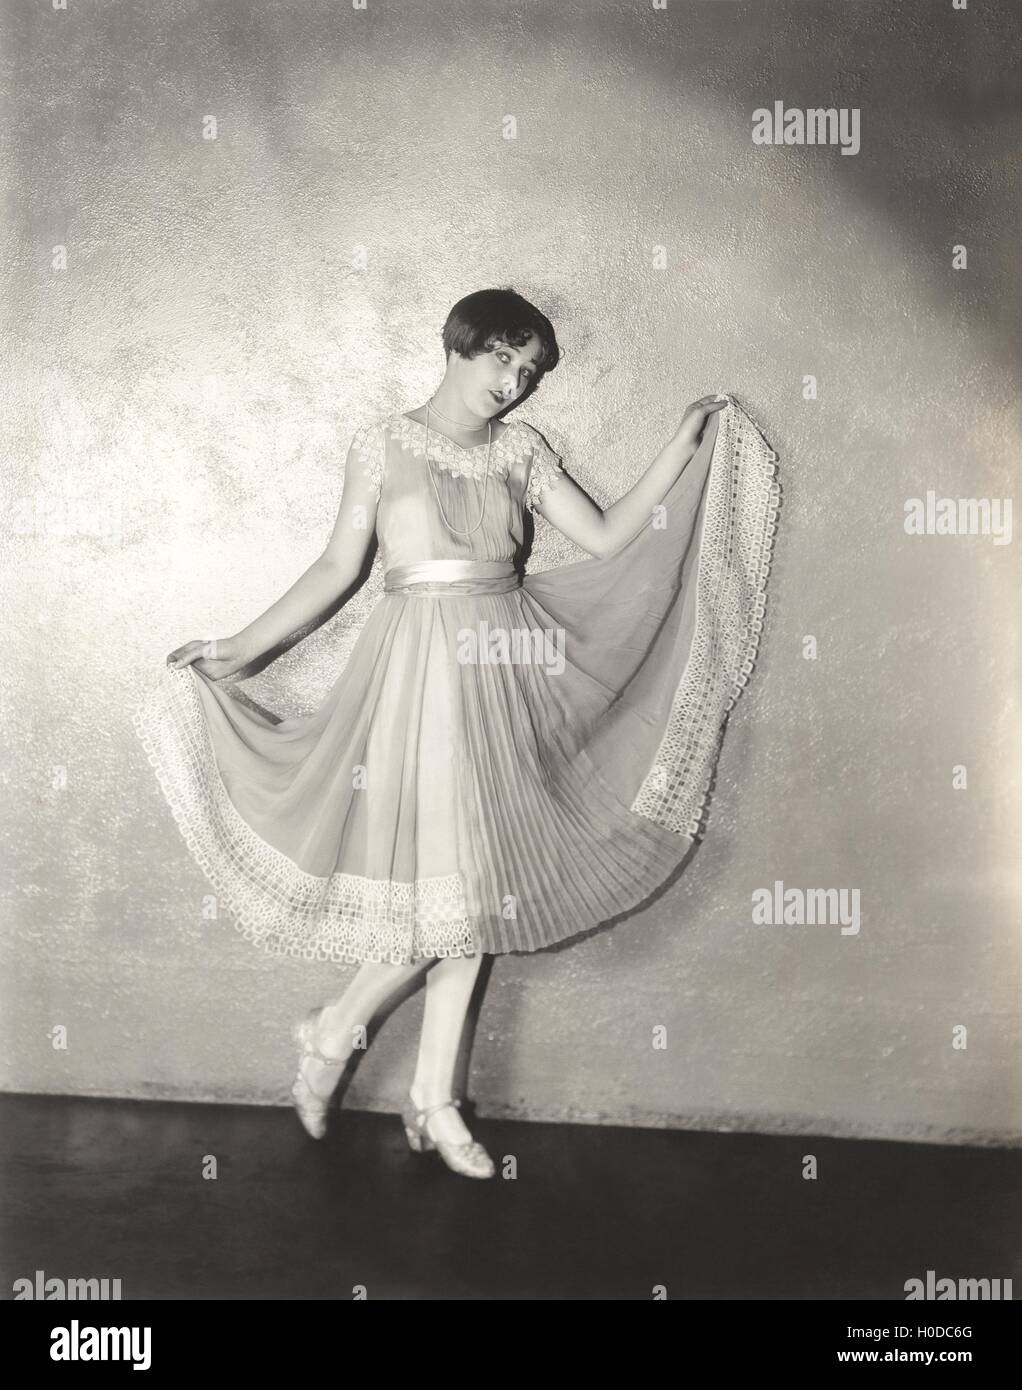 Woman modeling pleated dress - Stock Image